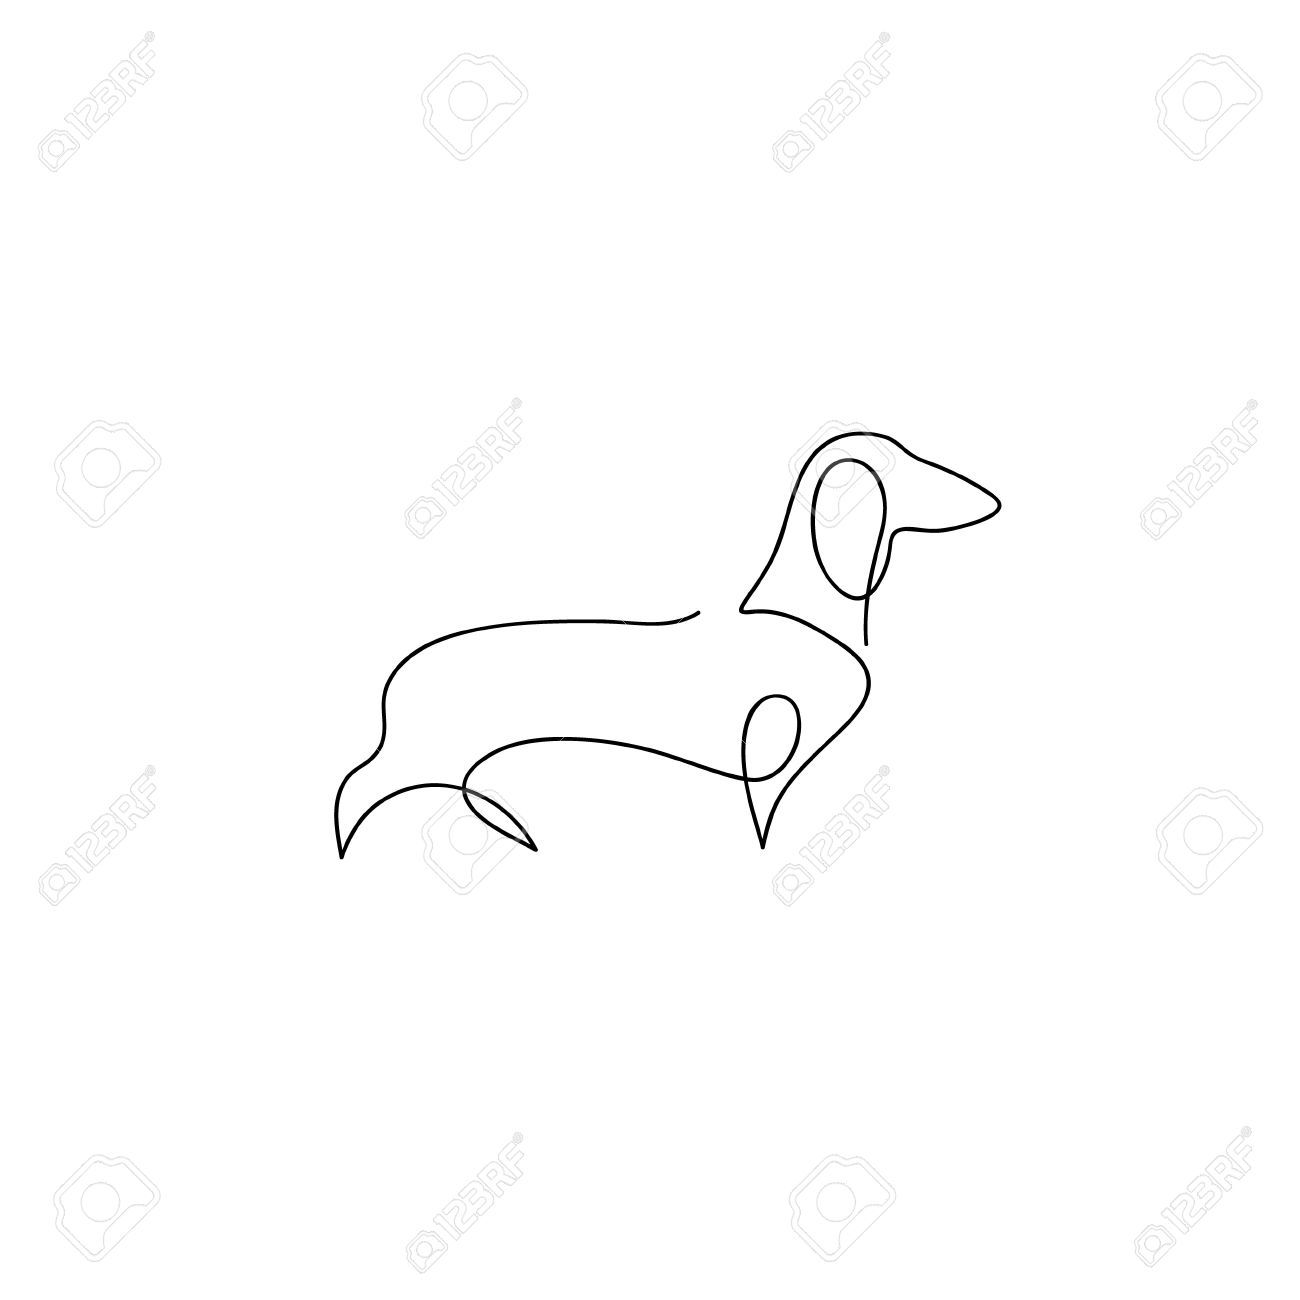 1300x1300 One Line Dog Design Silhouette Dachshund Hand Drawn Minimalism Dog Line Drawing Line Art Drawings Logo Design Trends